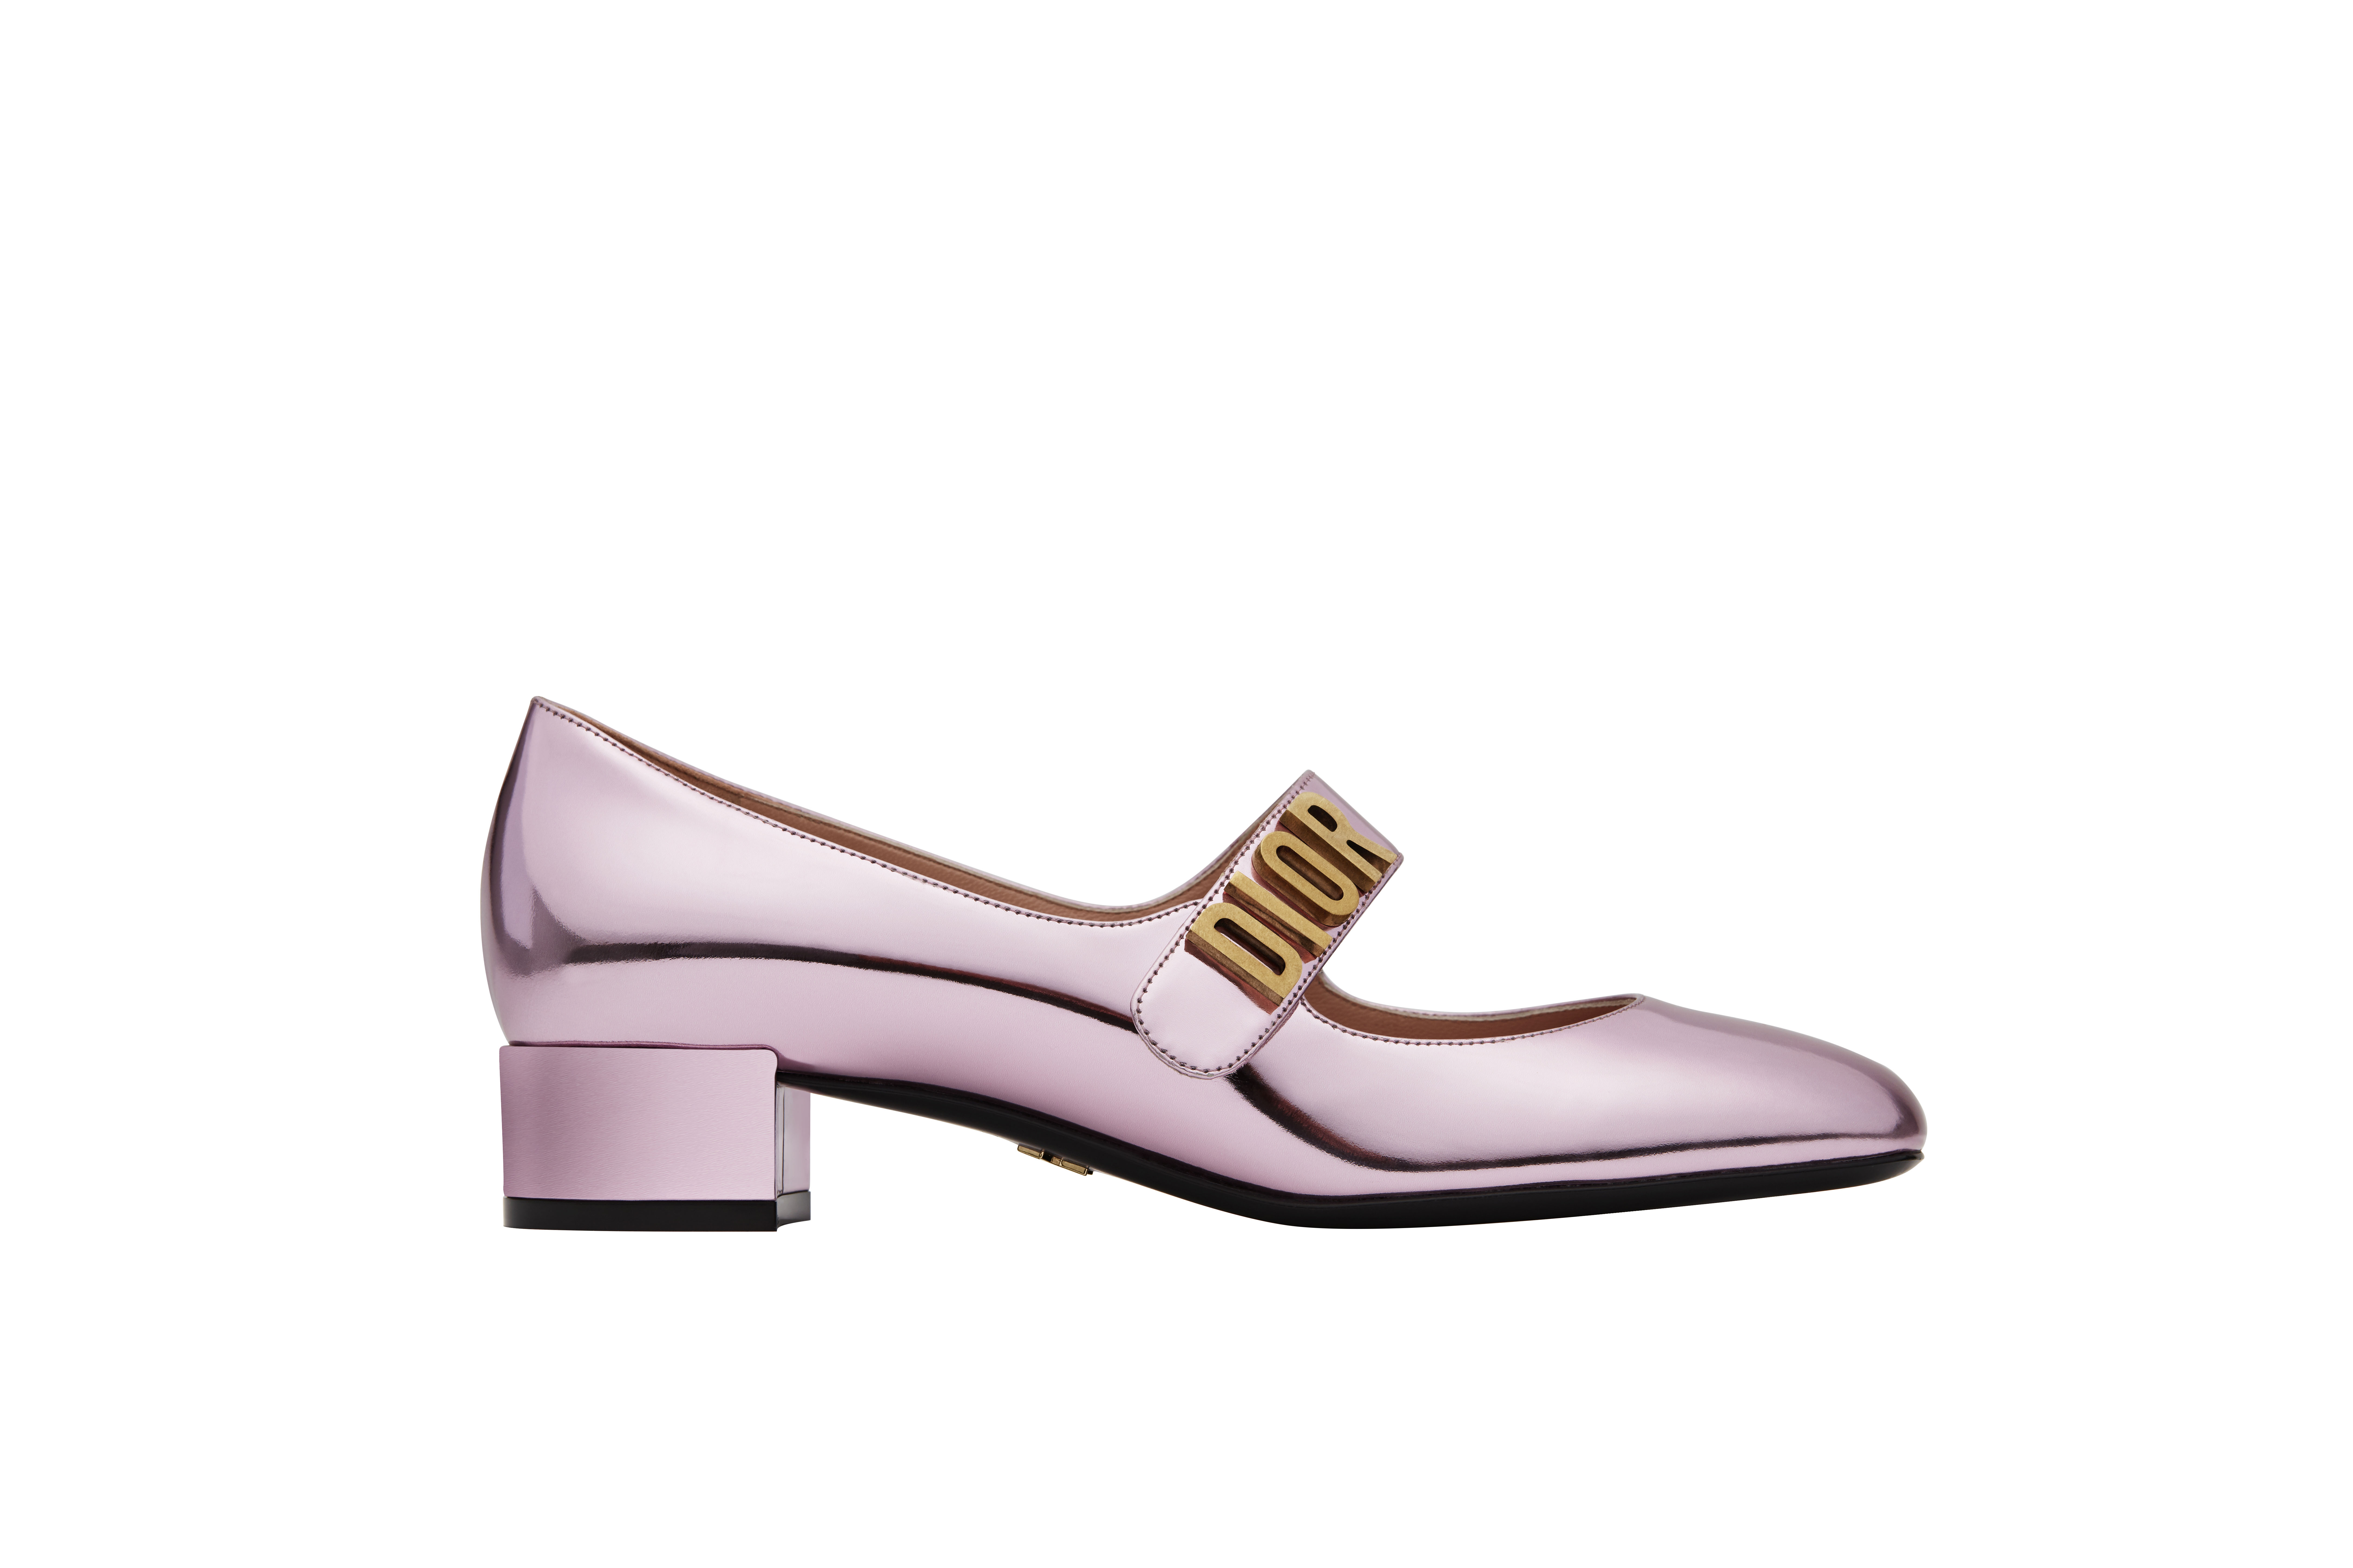 Shoes Dior - The Luxe Diary's Valentine's Gift List